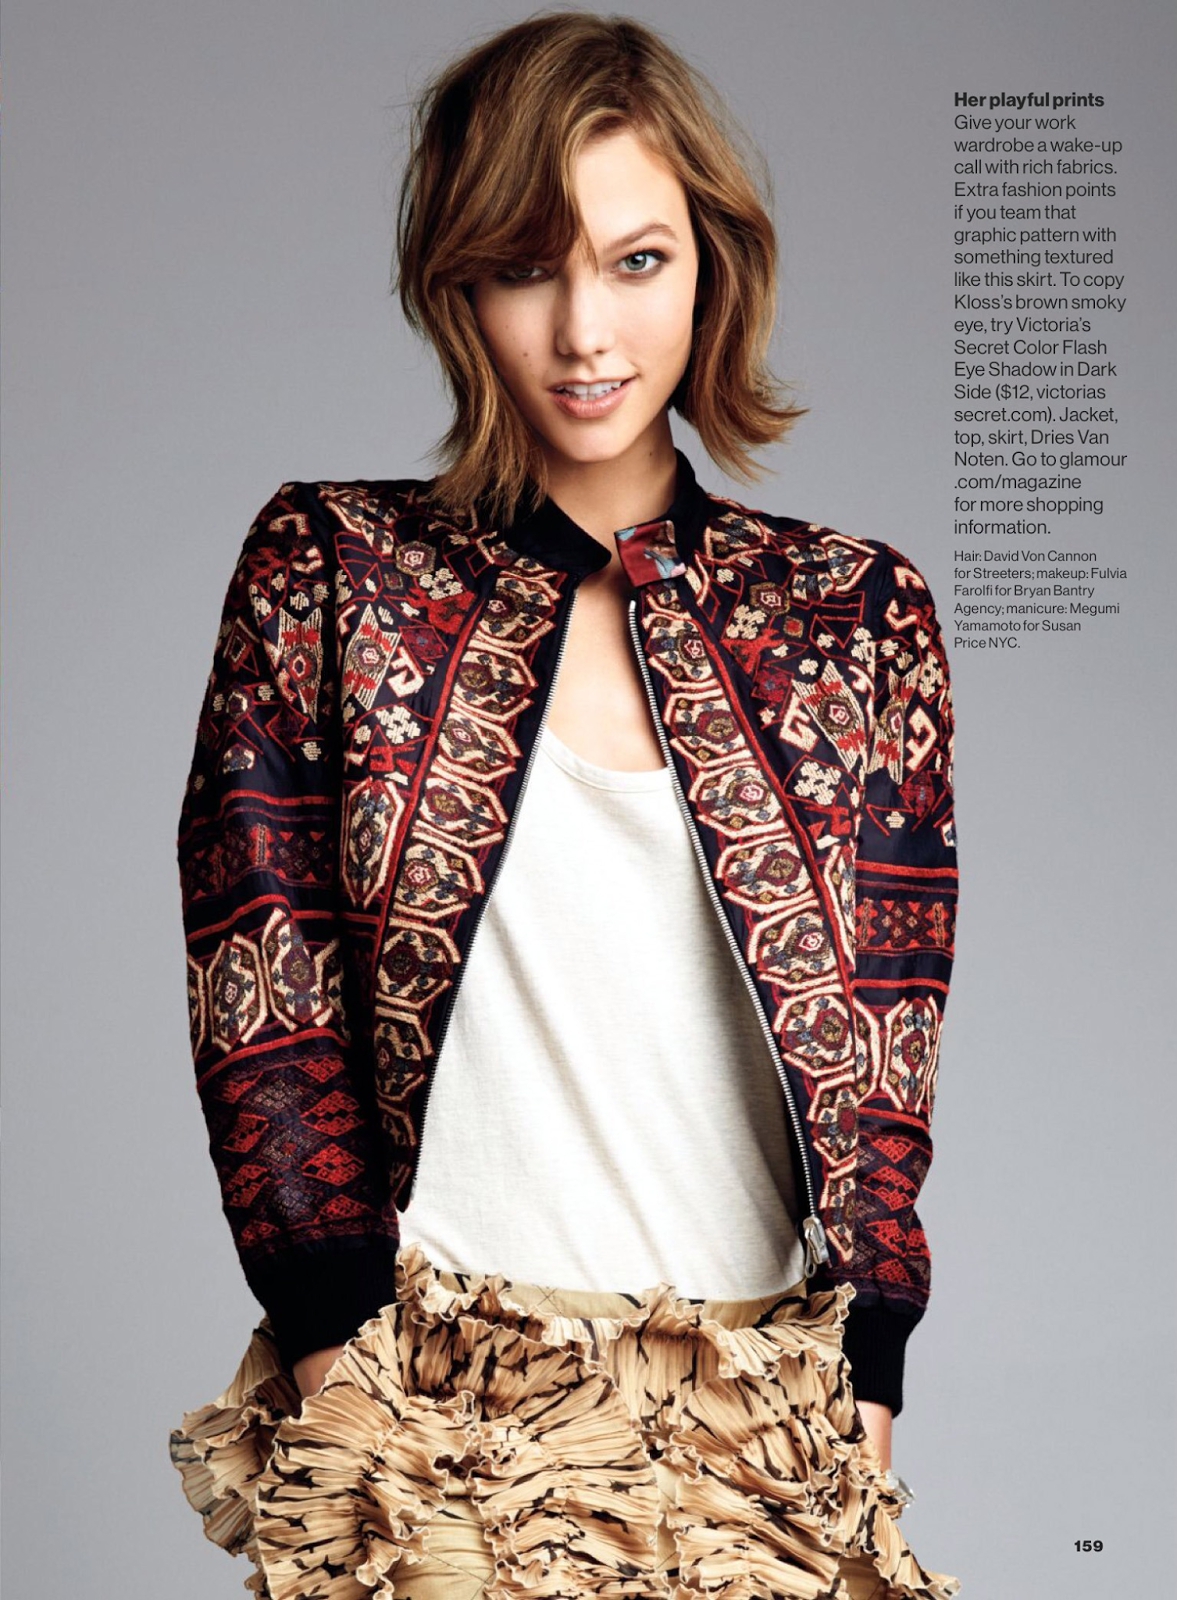 Magazine Photoshoot : Karlie Kloss Photoshot For Glamour Magazine US February 2014 Issue